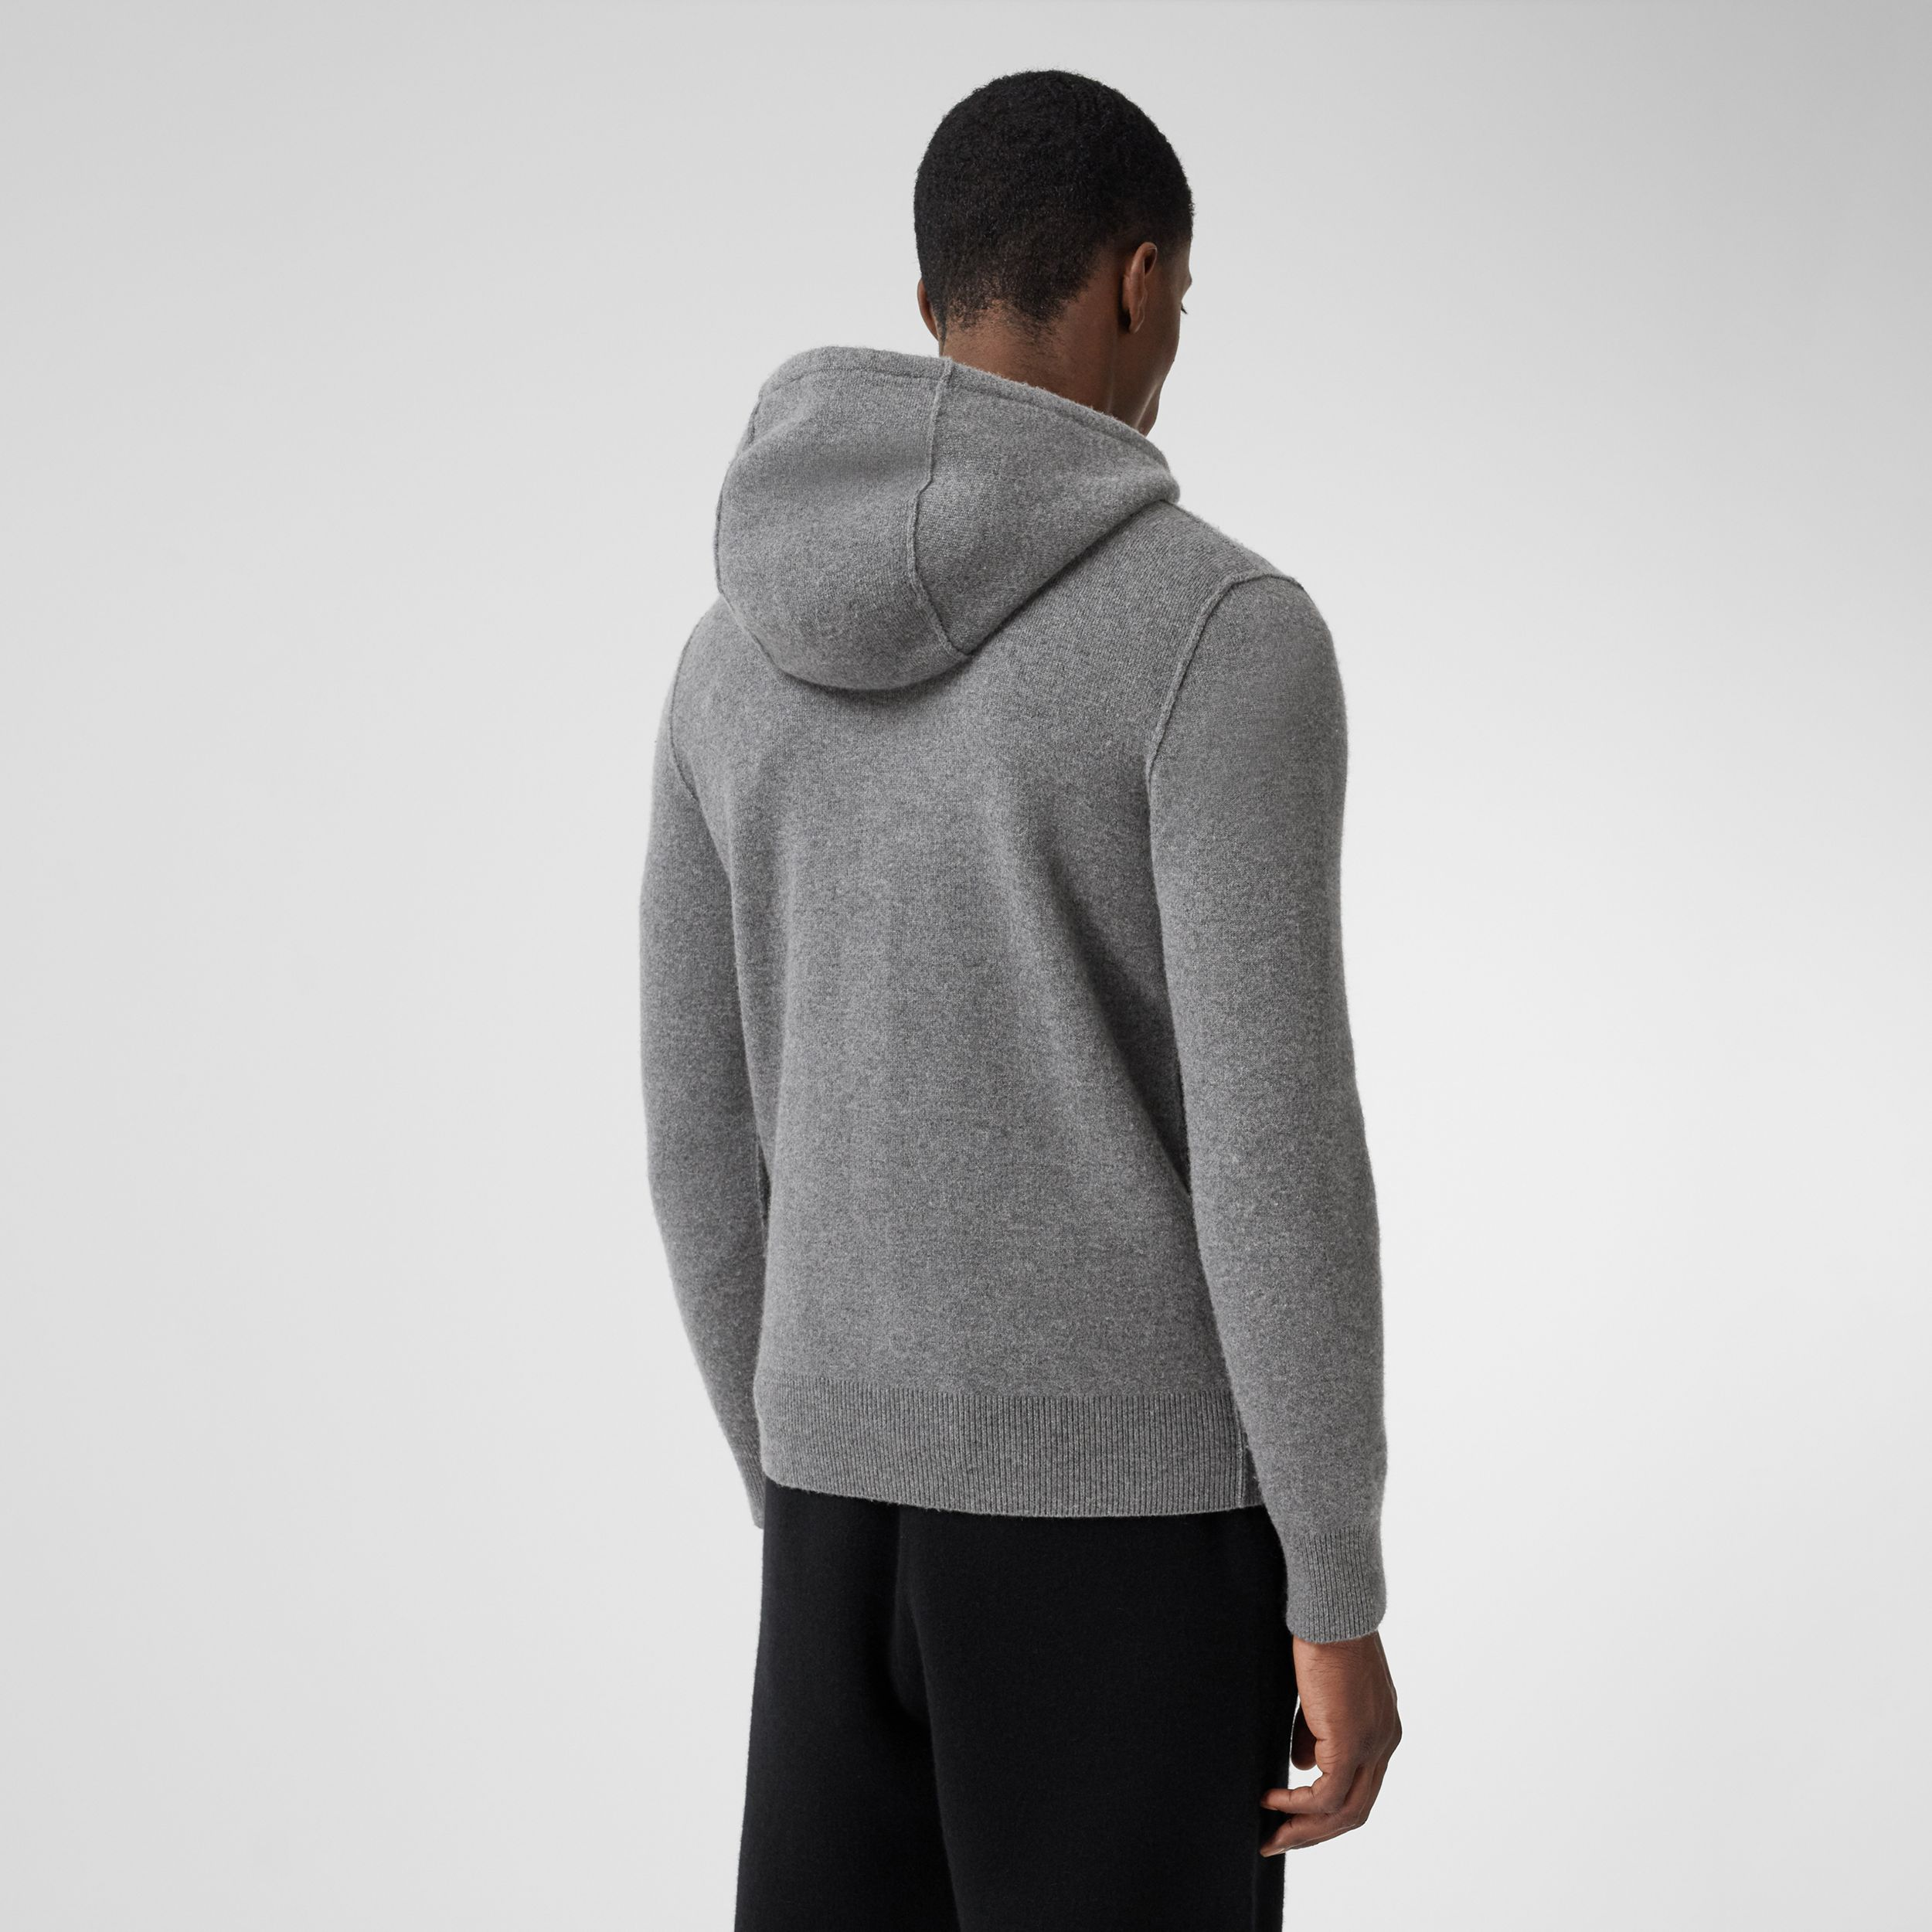 Monogram Motif Cashmere Blend Hooded Top in Mid Grey Melange - Men | Burberry Australia - 3